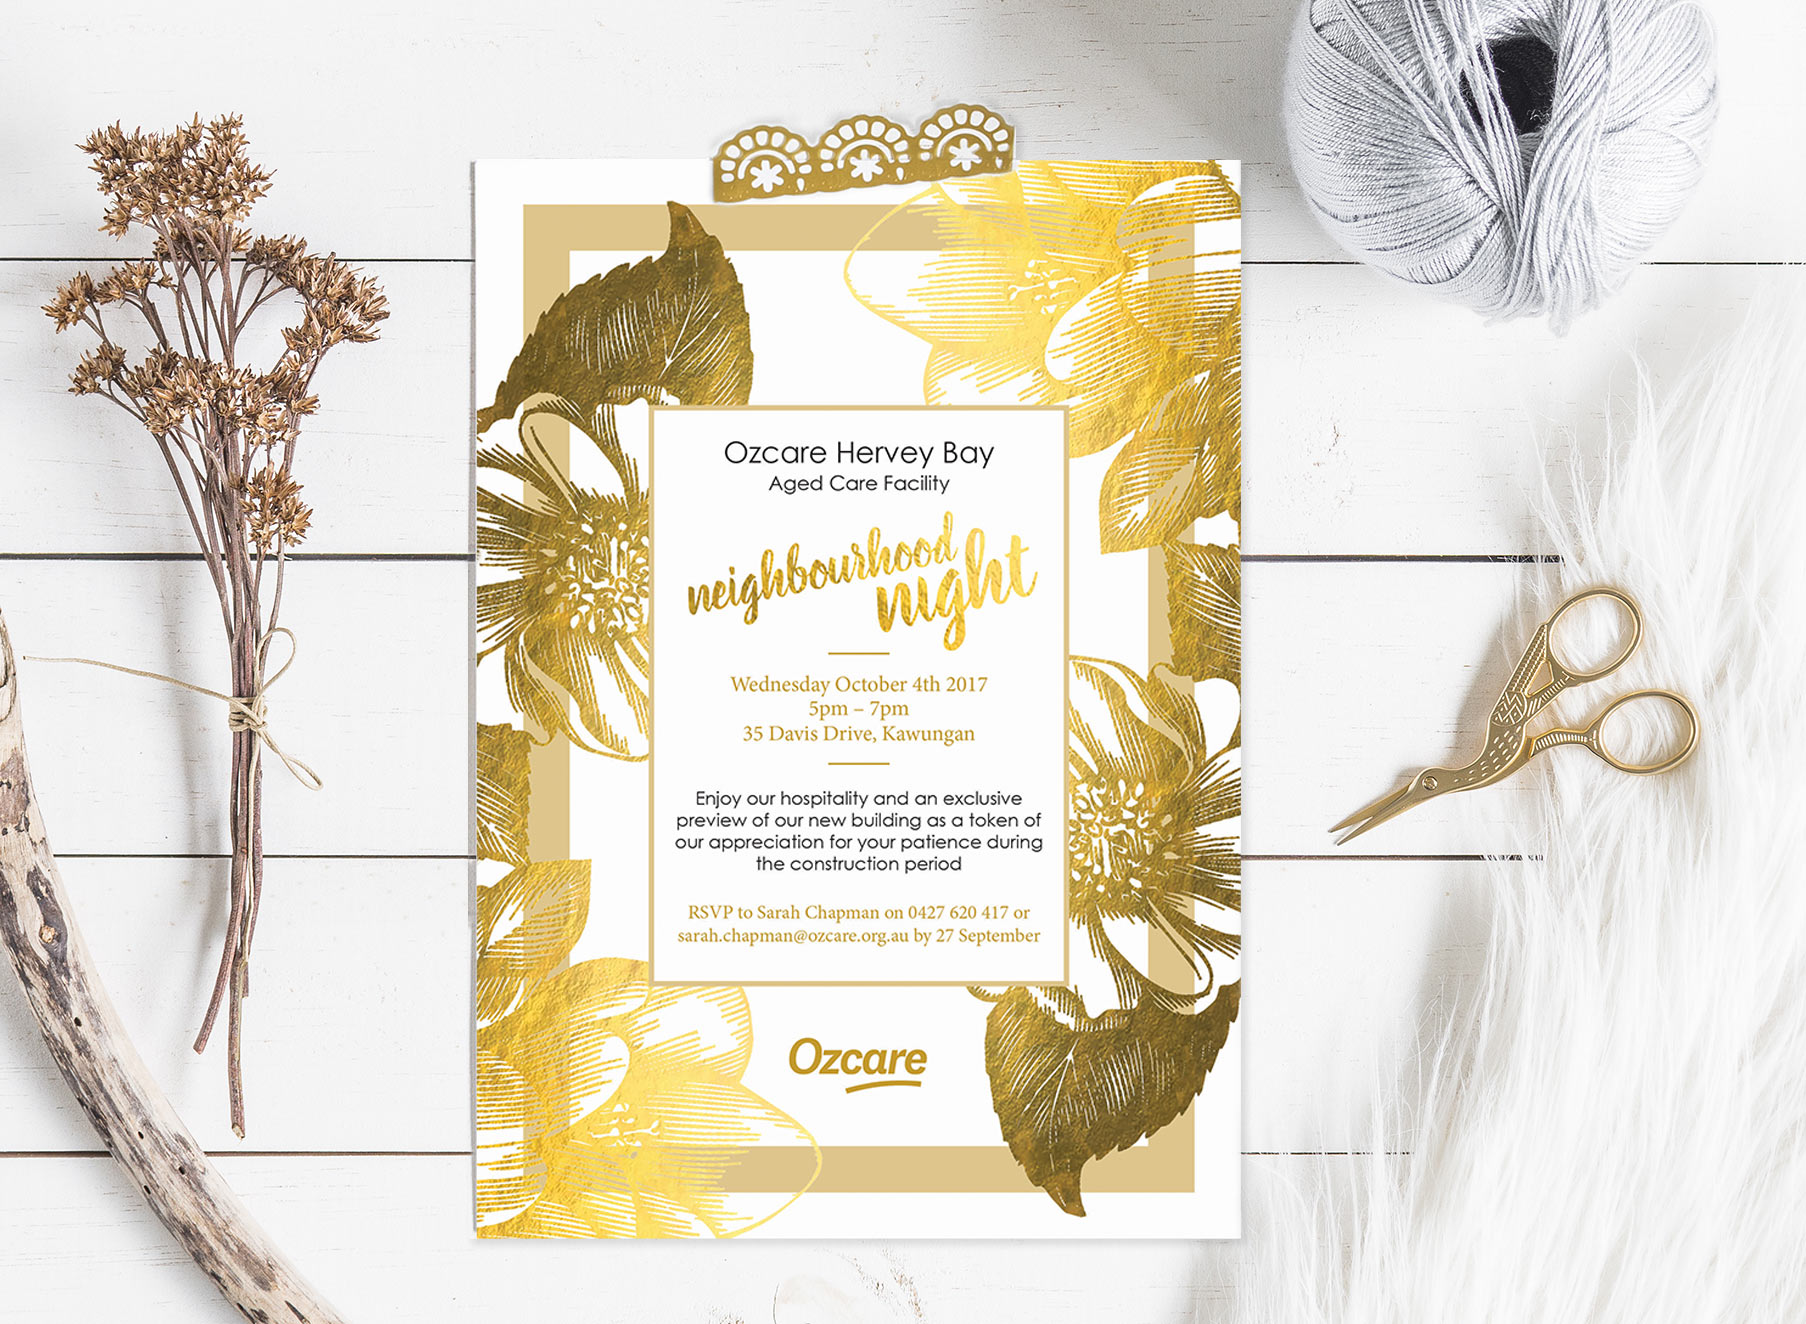 Ozcare Hervey Bay Neighbourhood Night Invite - Folio